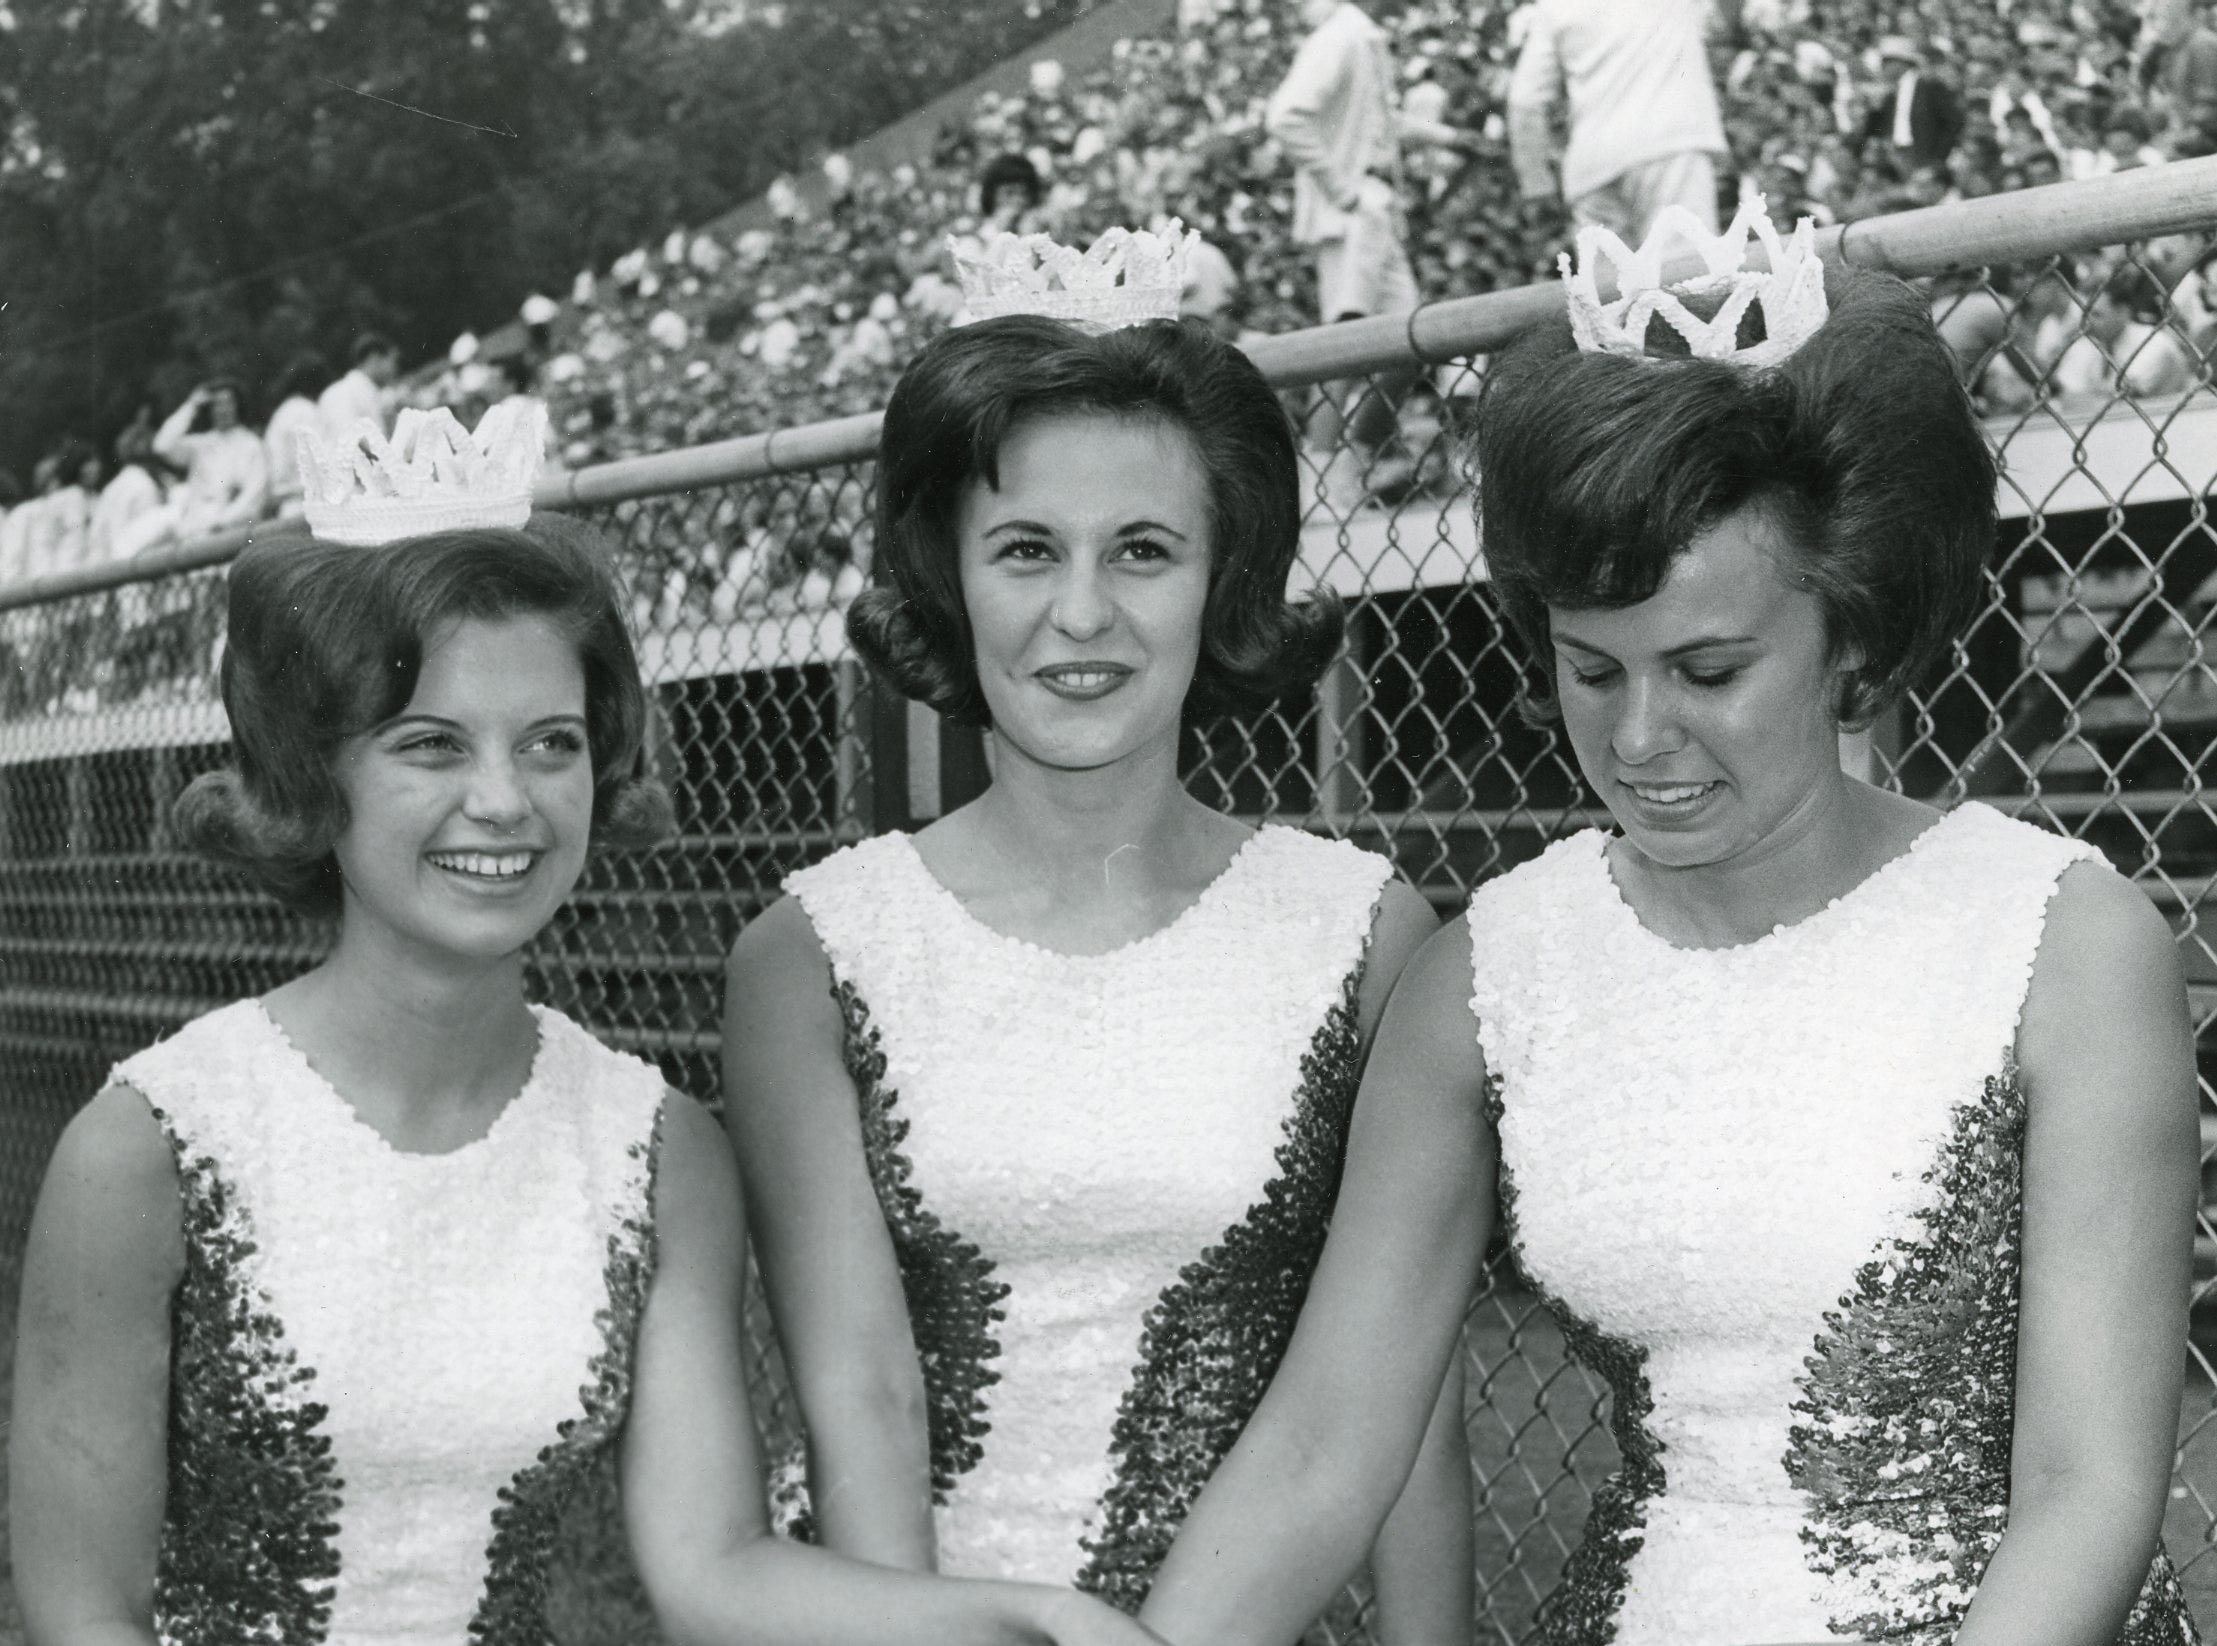 UT majorettes with Smokey III before the September, 1964 UT game vs. Chattanooga. Pictured are Judy Phillips, Elaine White and Deede Wiggins.